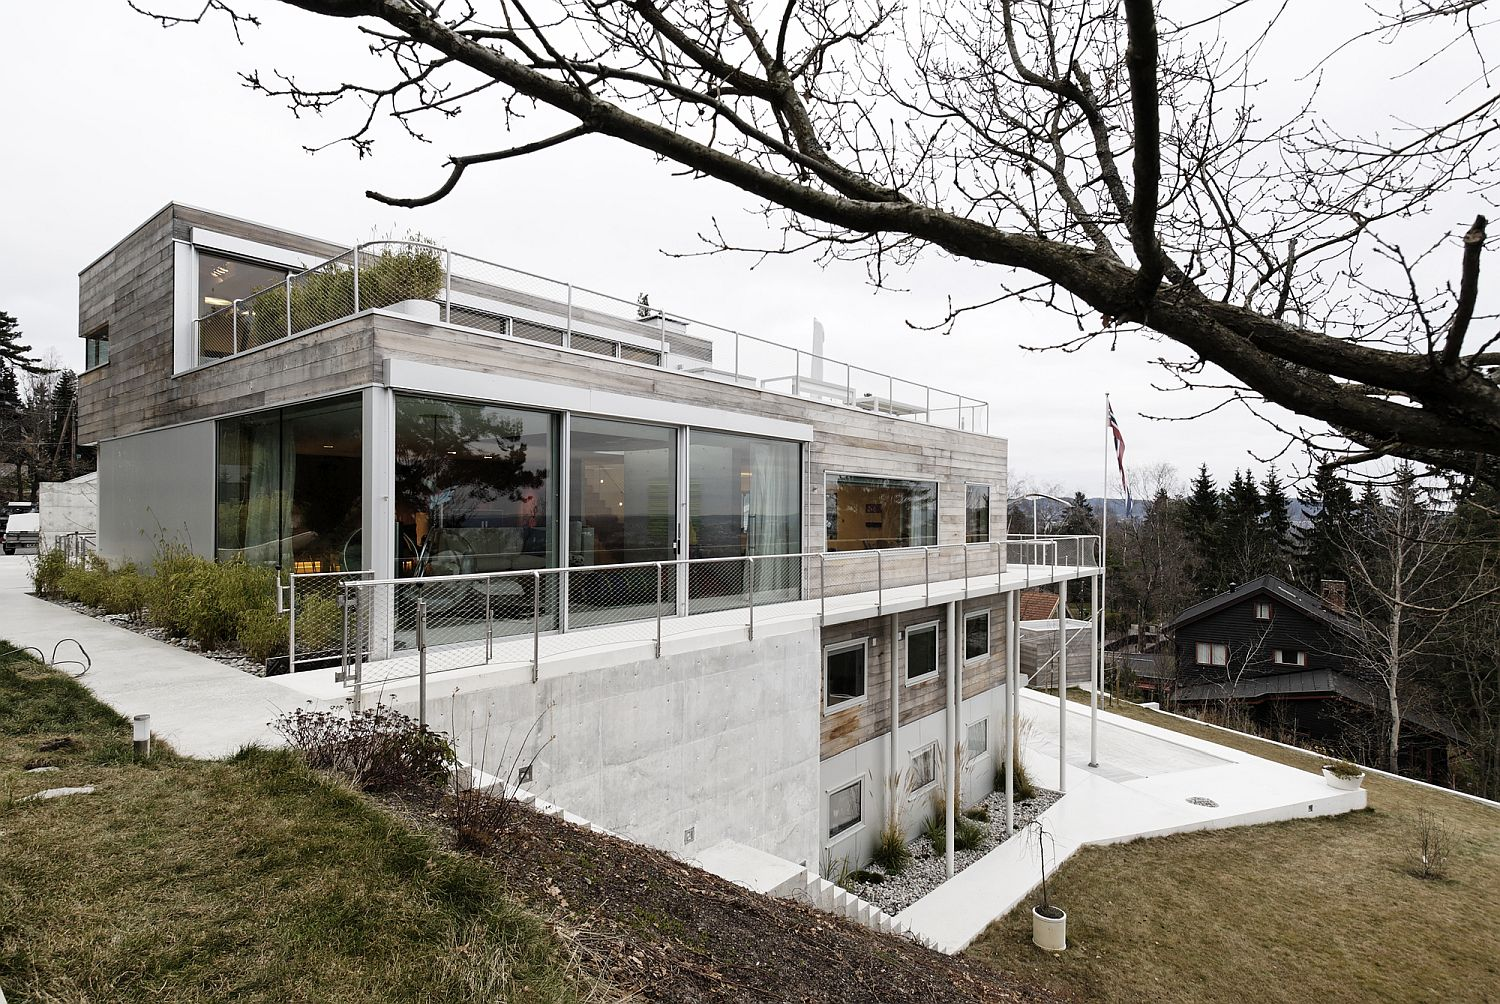 Gorgeous four levels of the home overlooking the landscape outside